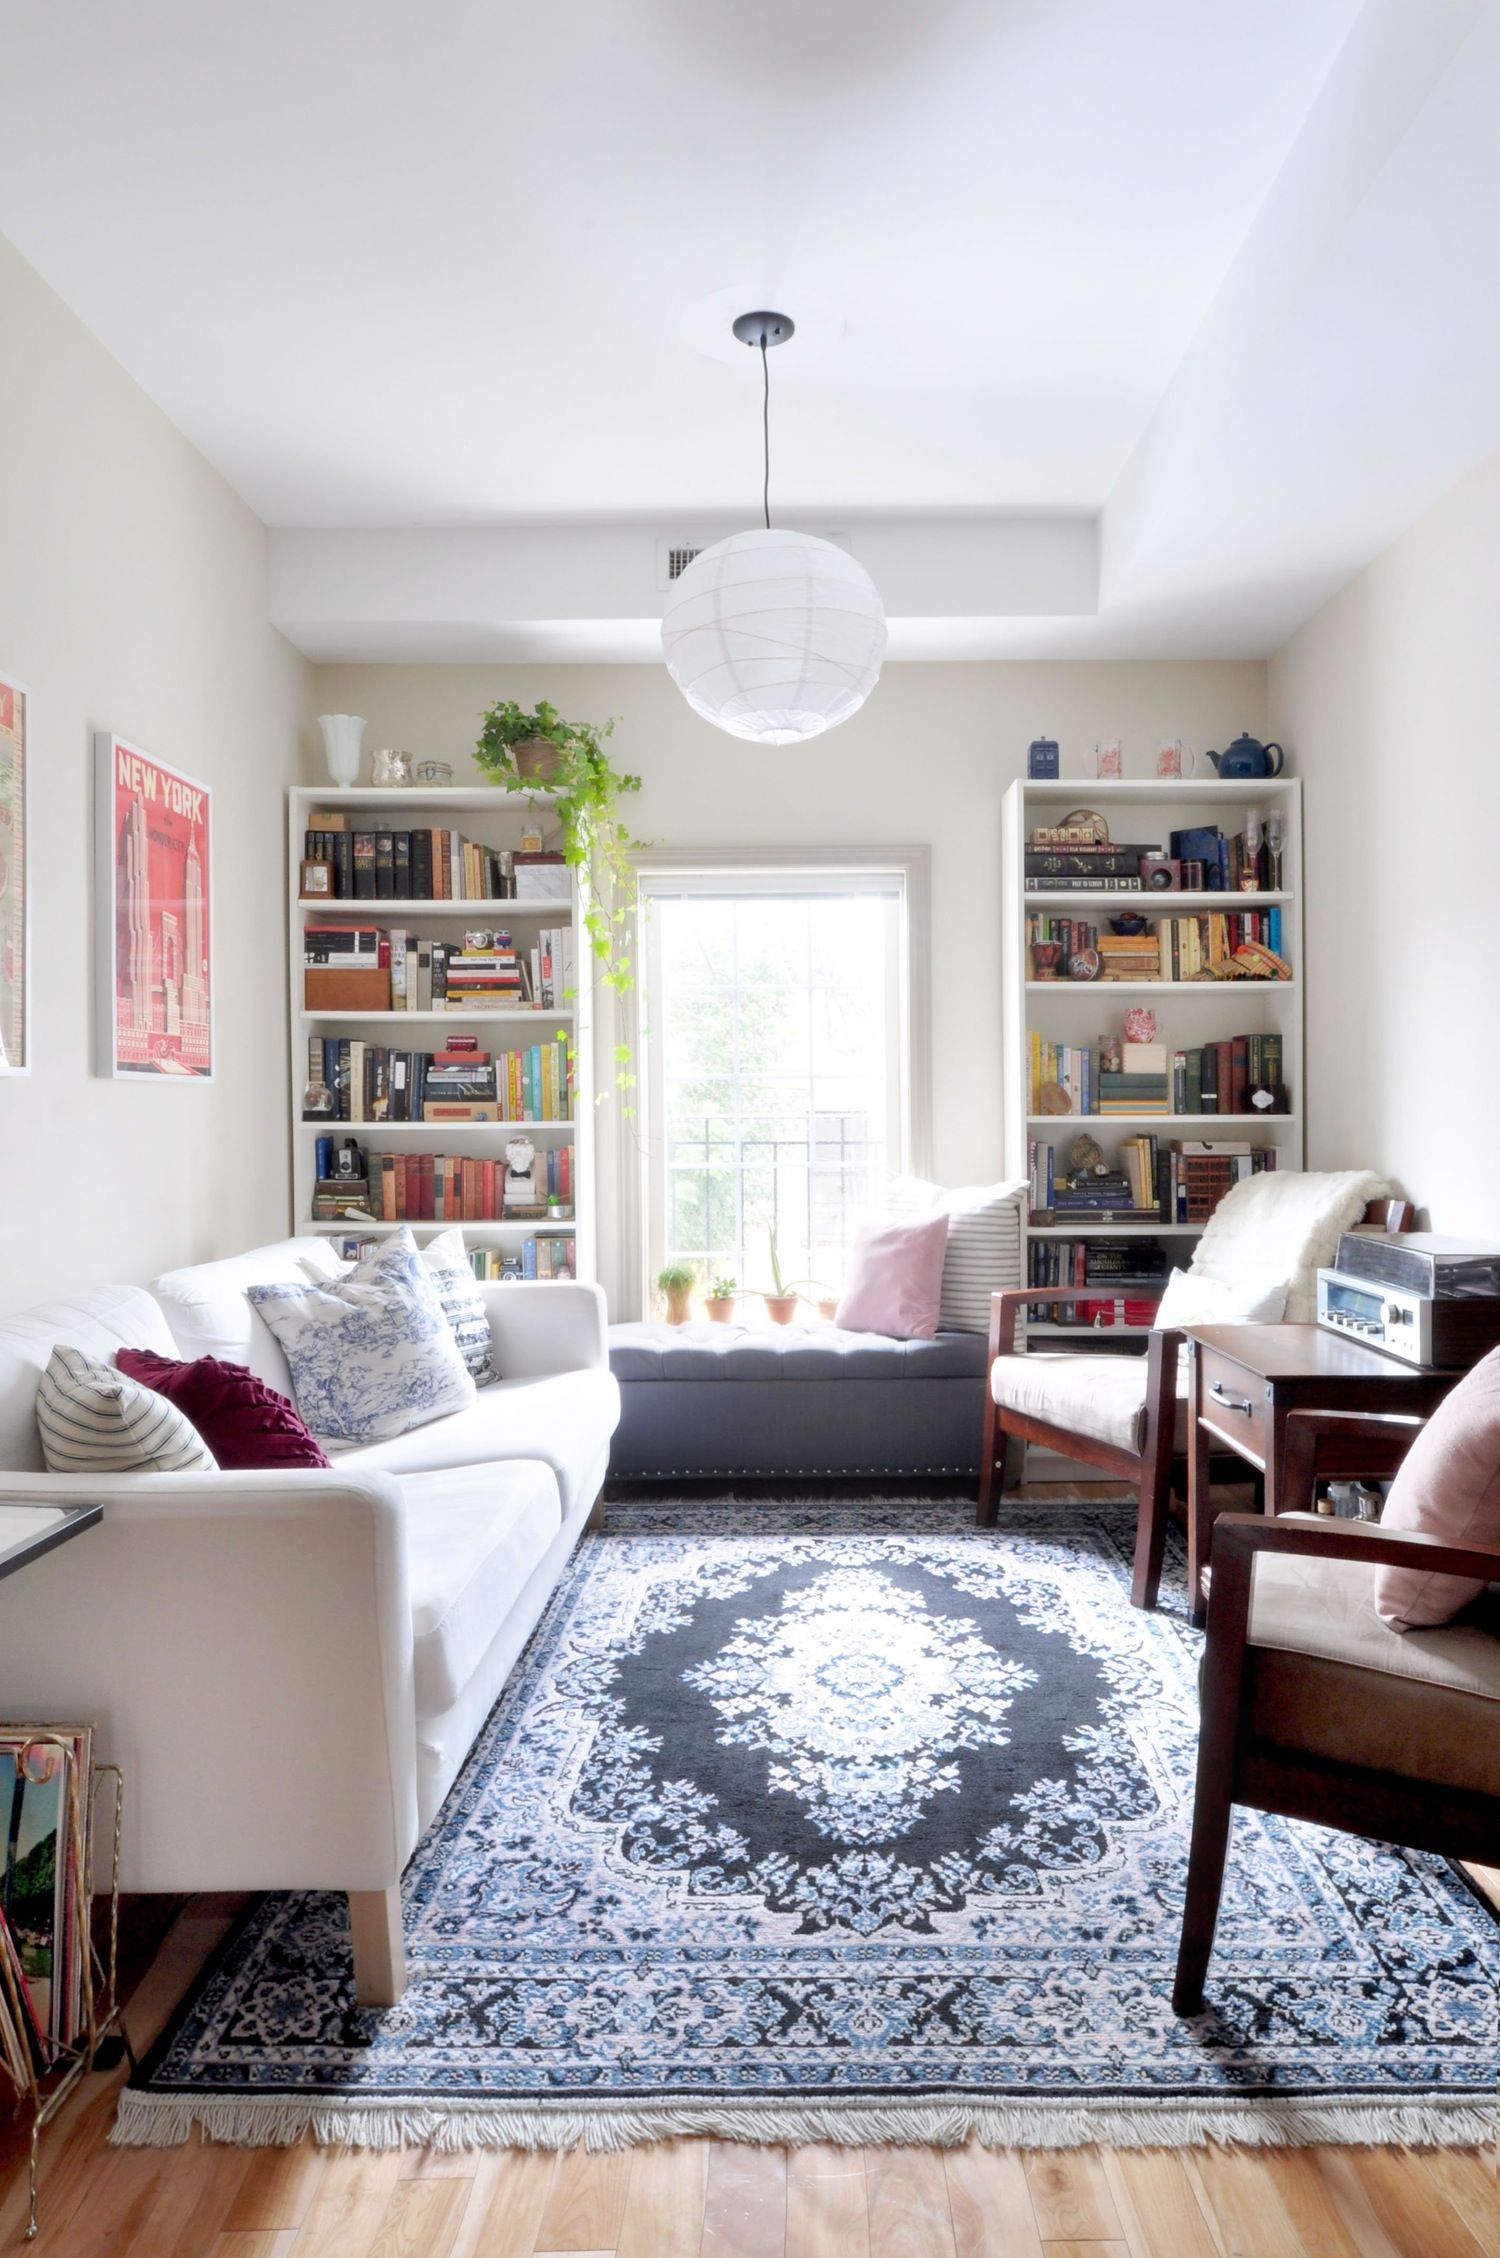 Small Narrow Living Room Decorating Ideas: 4 First-Apartment Mistakes Everyone Makes (and How To